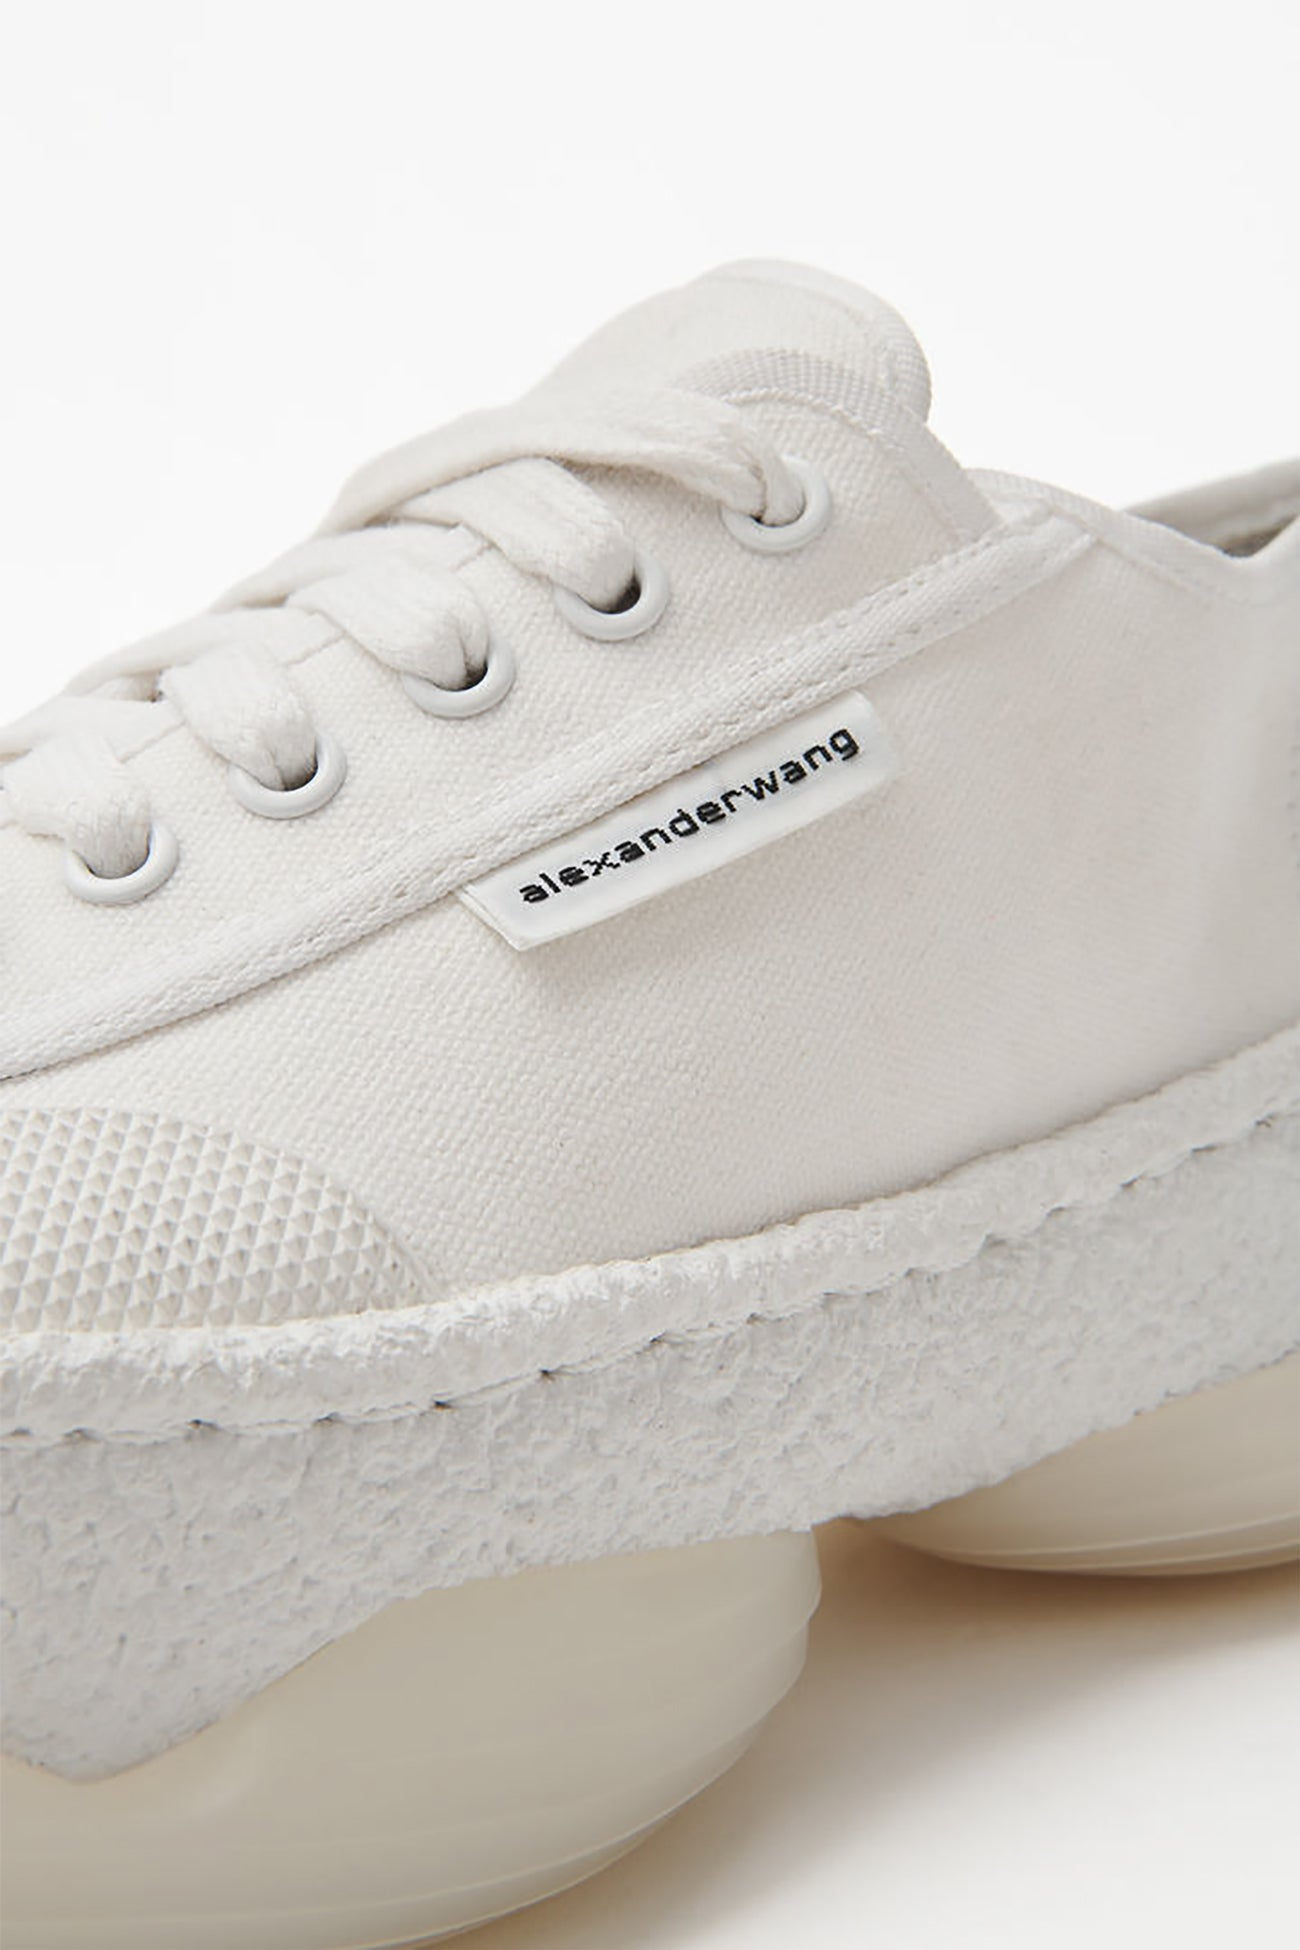 A1 White Canvas Low Top Sneaker